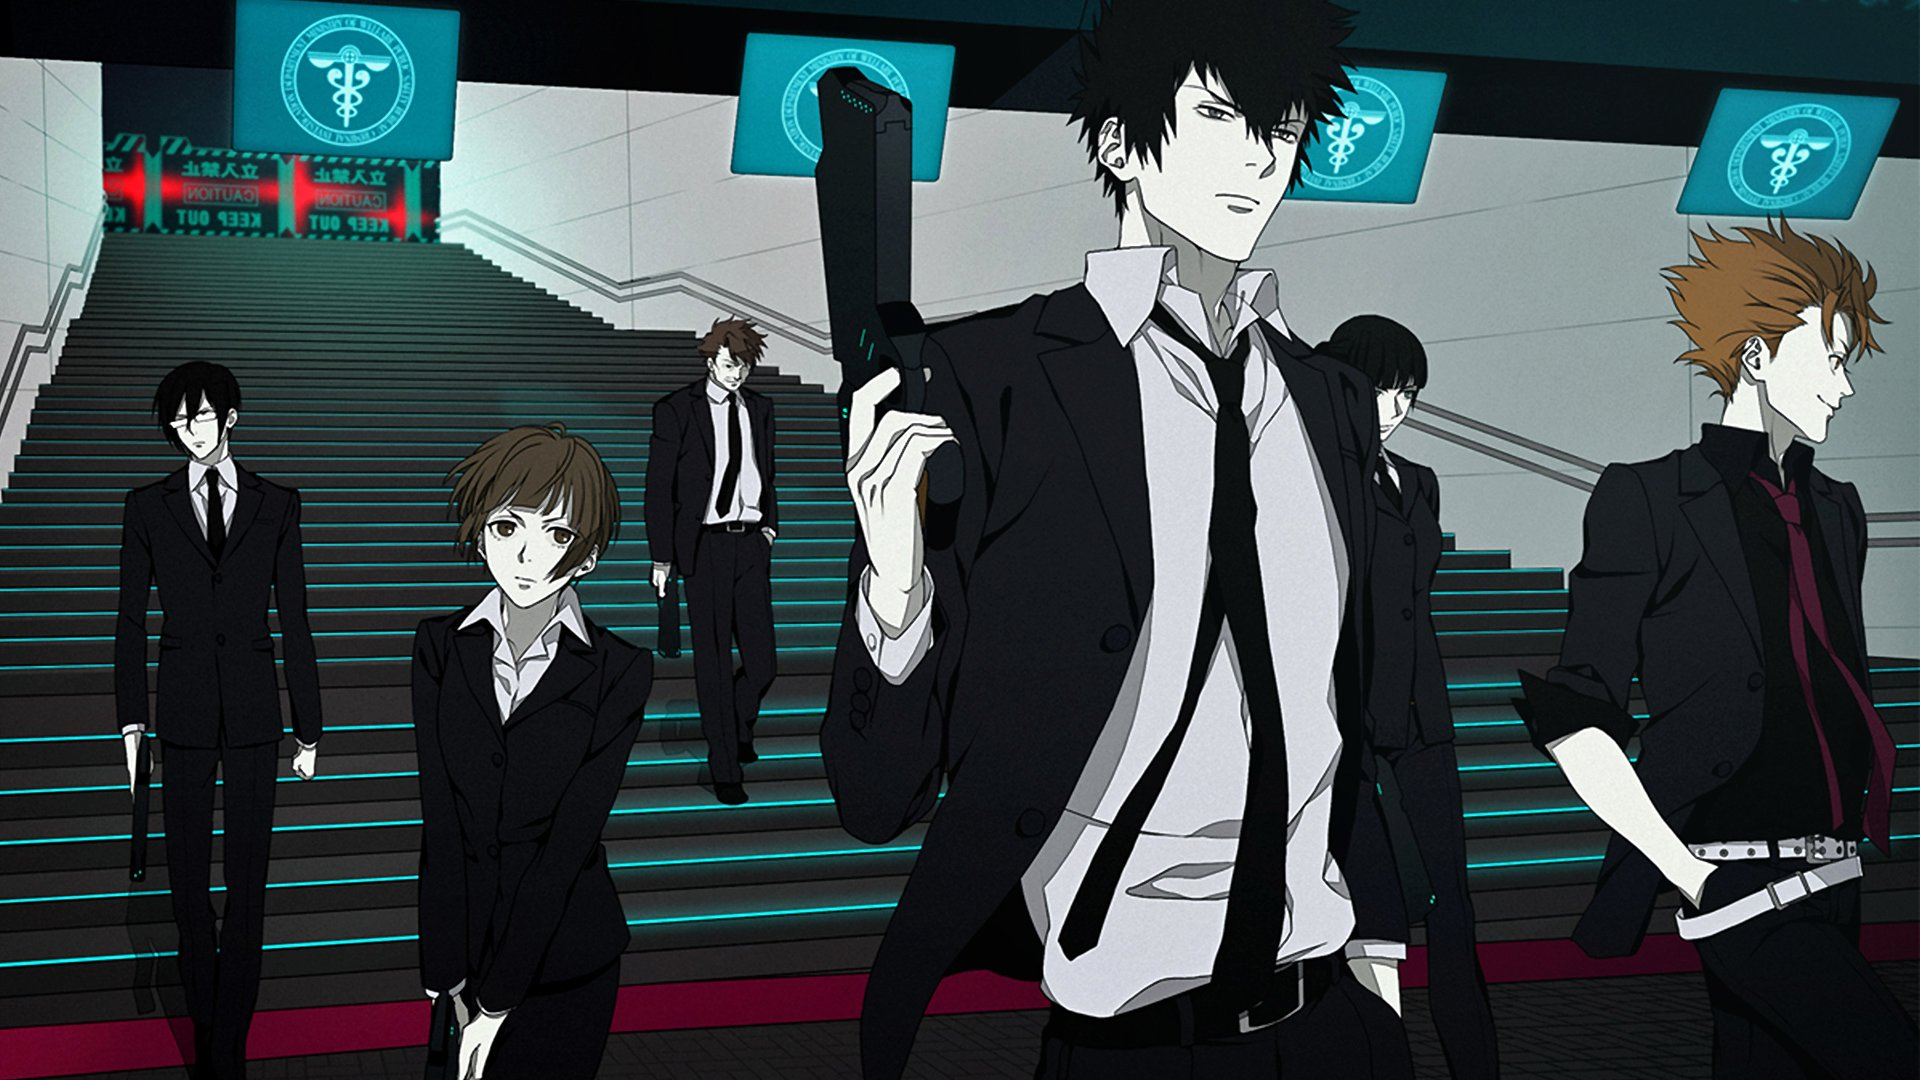 40 Psycho Pass Wallpaper Hd On Wallpapersafari